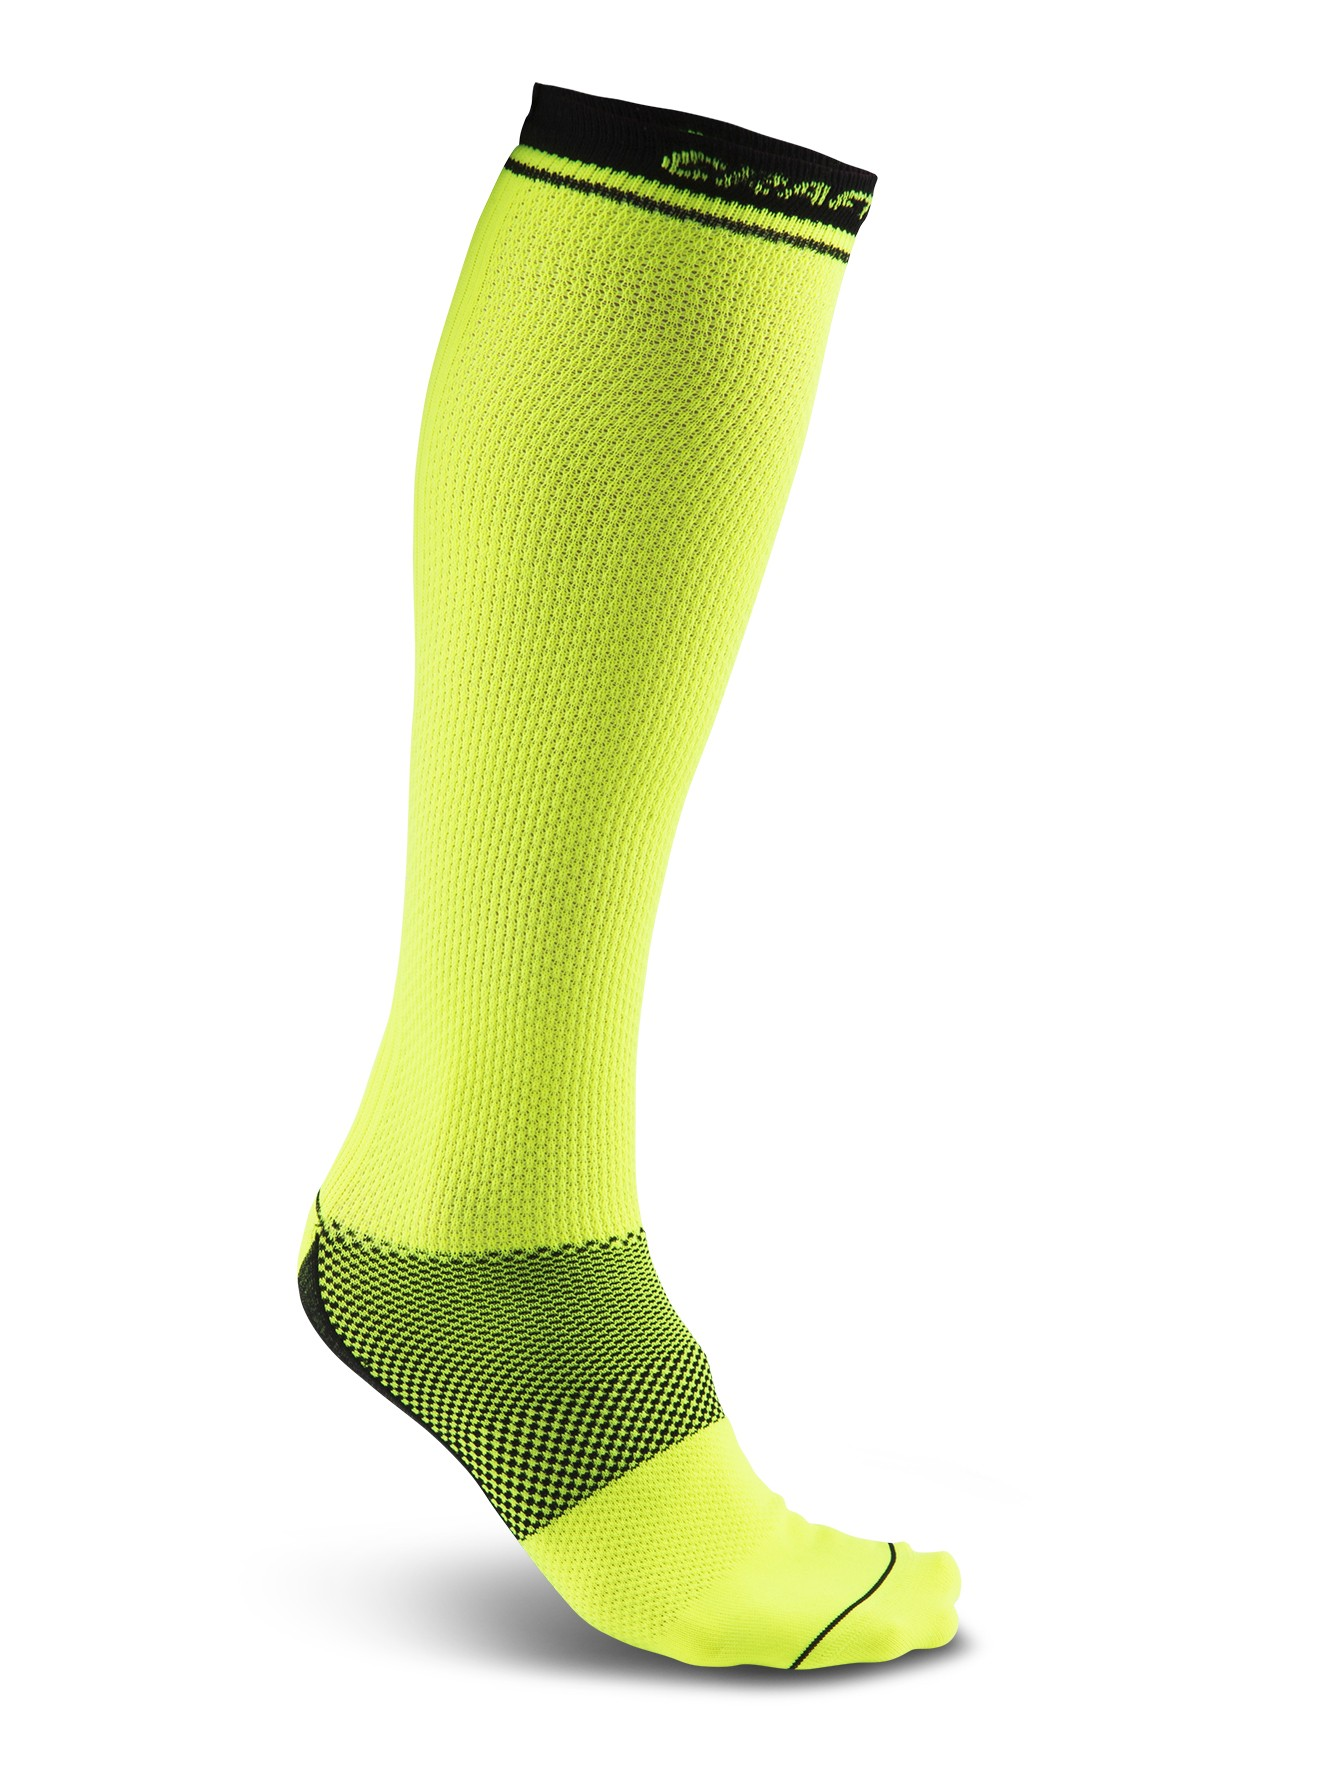 Craft Compression Sock - skarpetka sportowa - żółte SS16